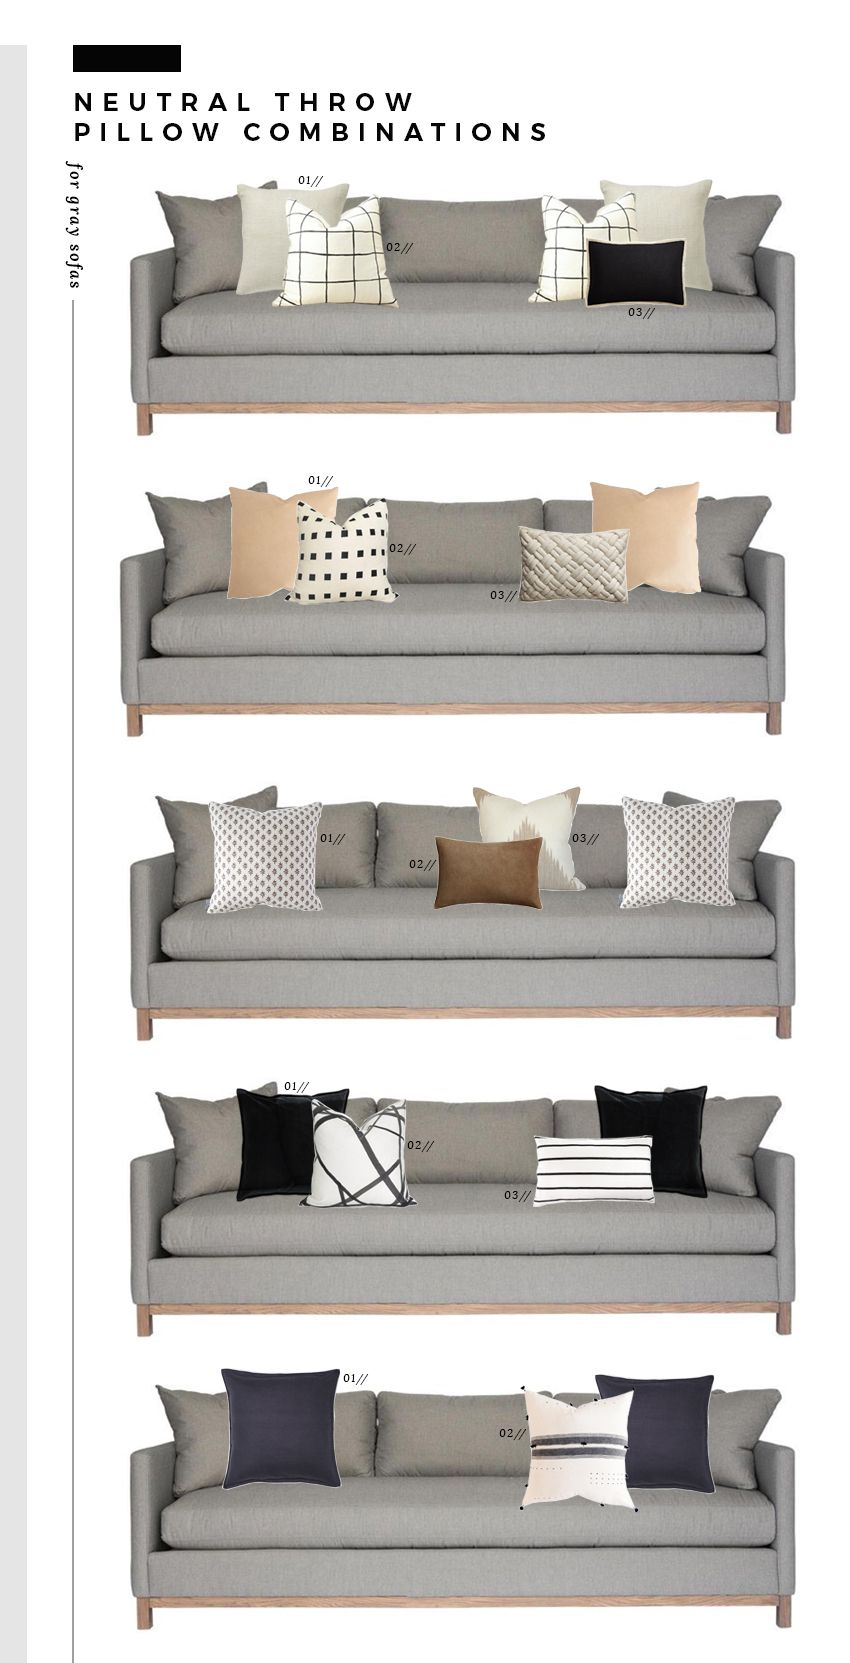 Neutral Throw Pillow Combinations for White and Gray Sofas - Room for Tuesday